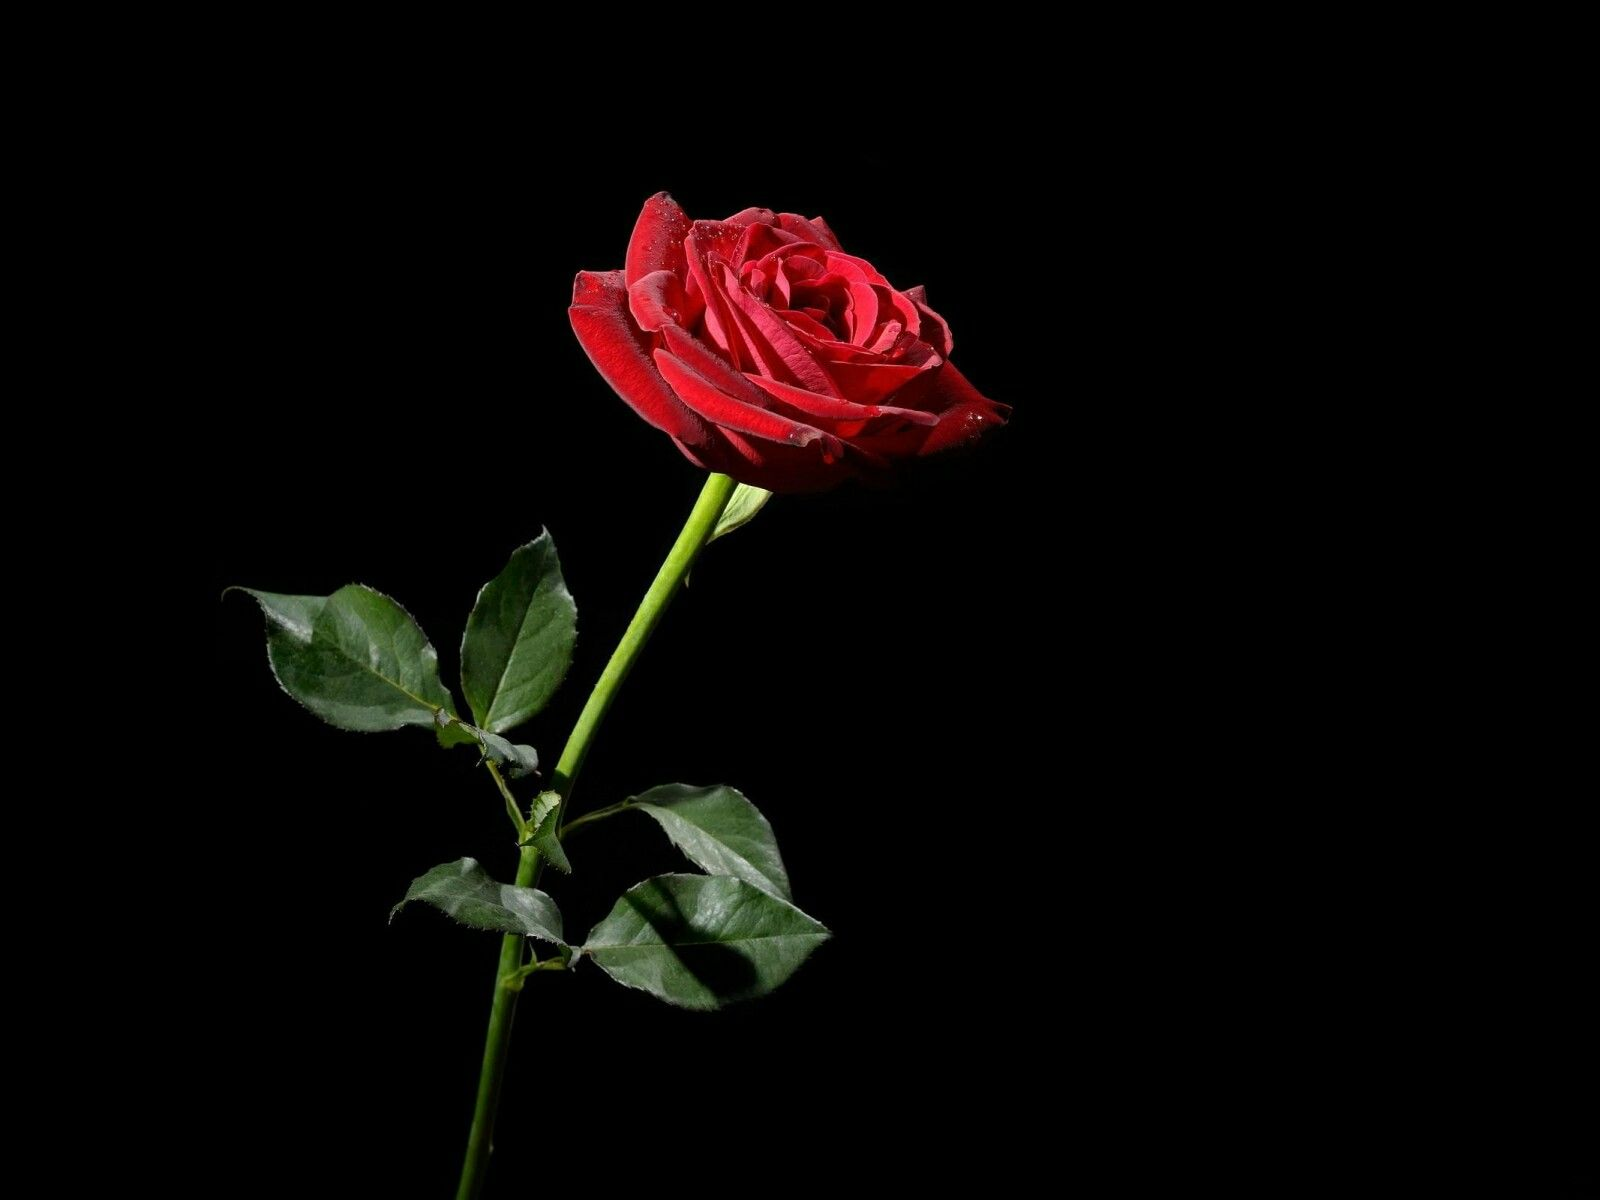 Red Rose Black Background Black Roses Wallpaper Red Flower Wallpaper Black Background Wallpaper